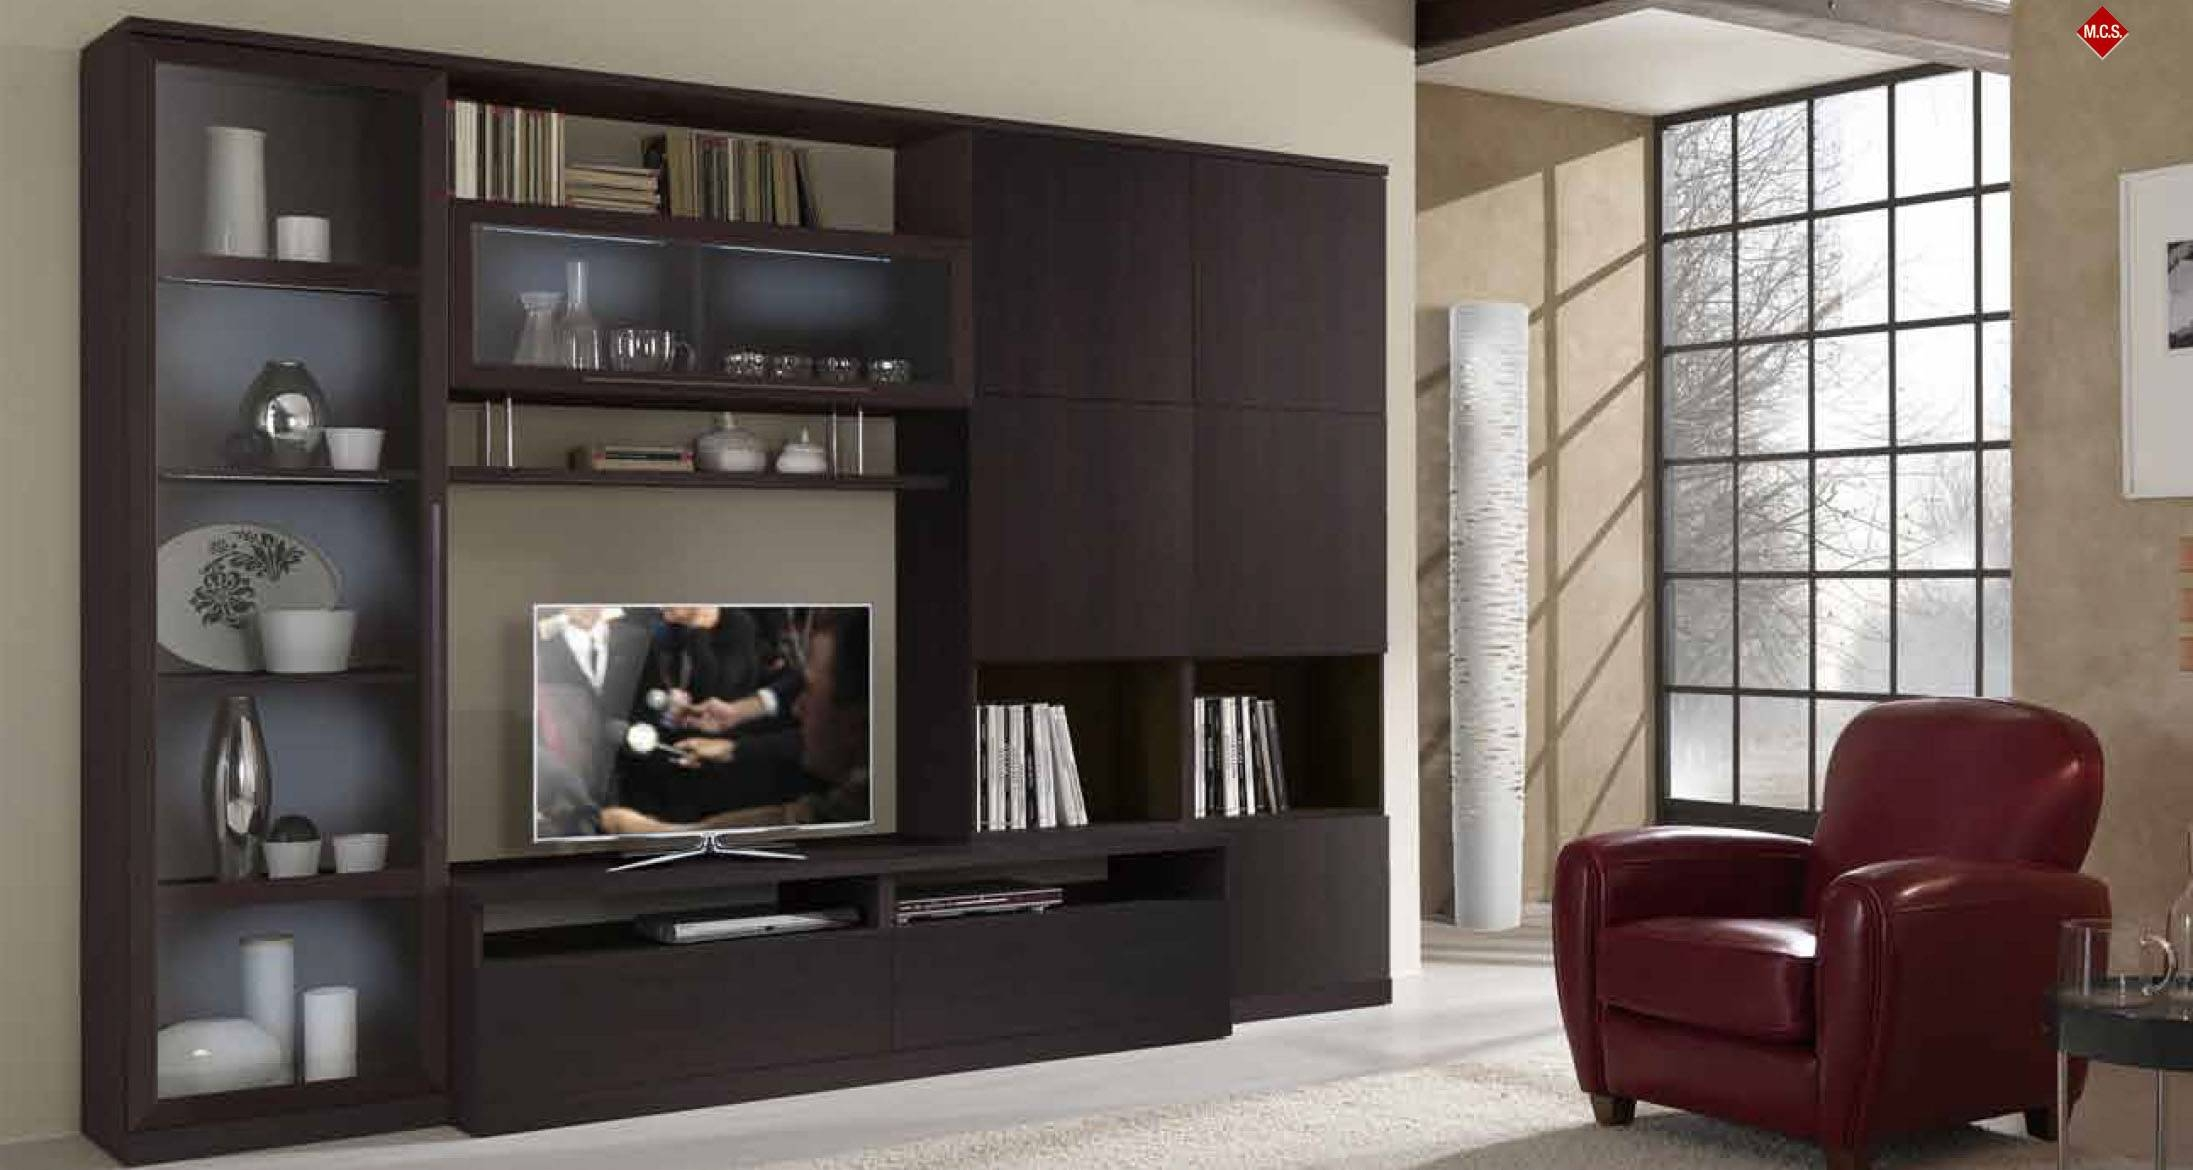 Wall Units: Astonishing Wall Display Units & Tv Cabinets Outdoor For Wall Display Units And Tv Cabinets (View 2 of 15)